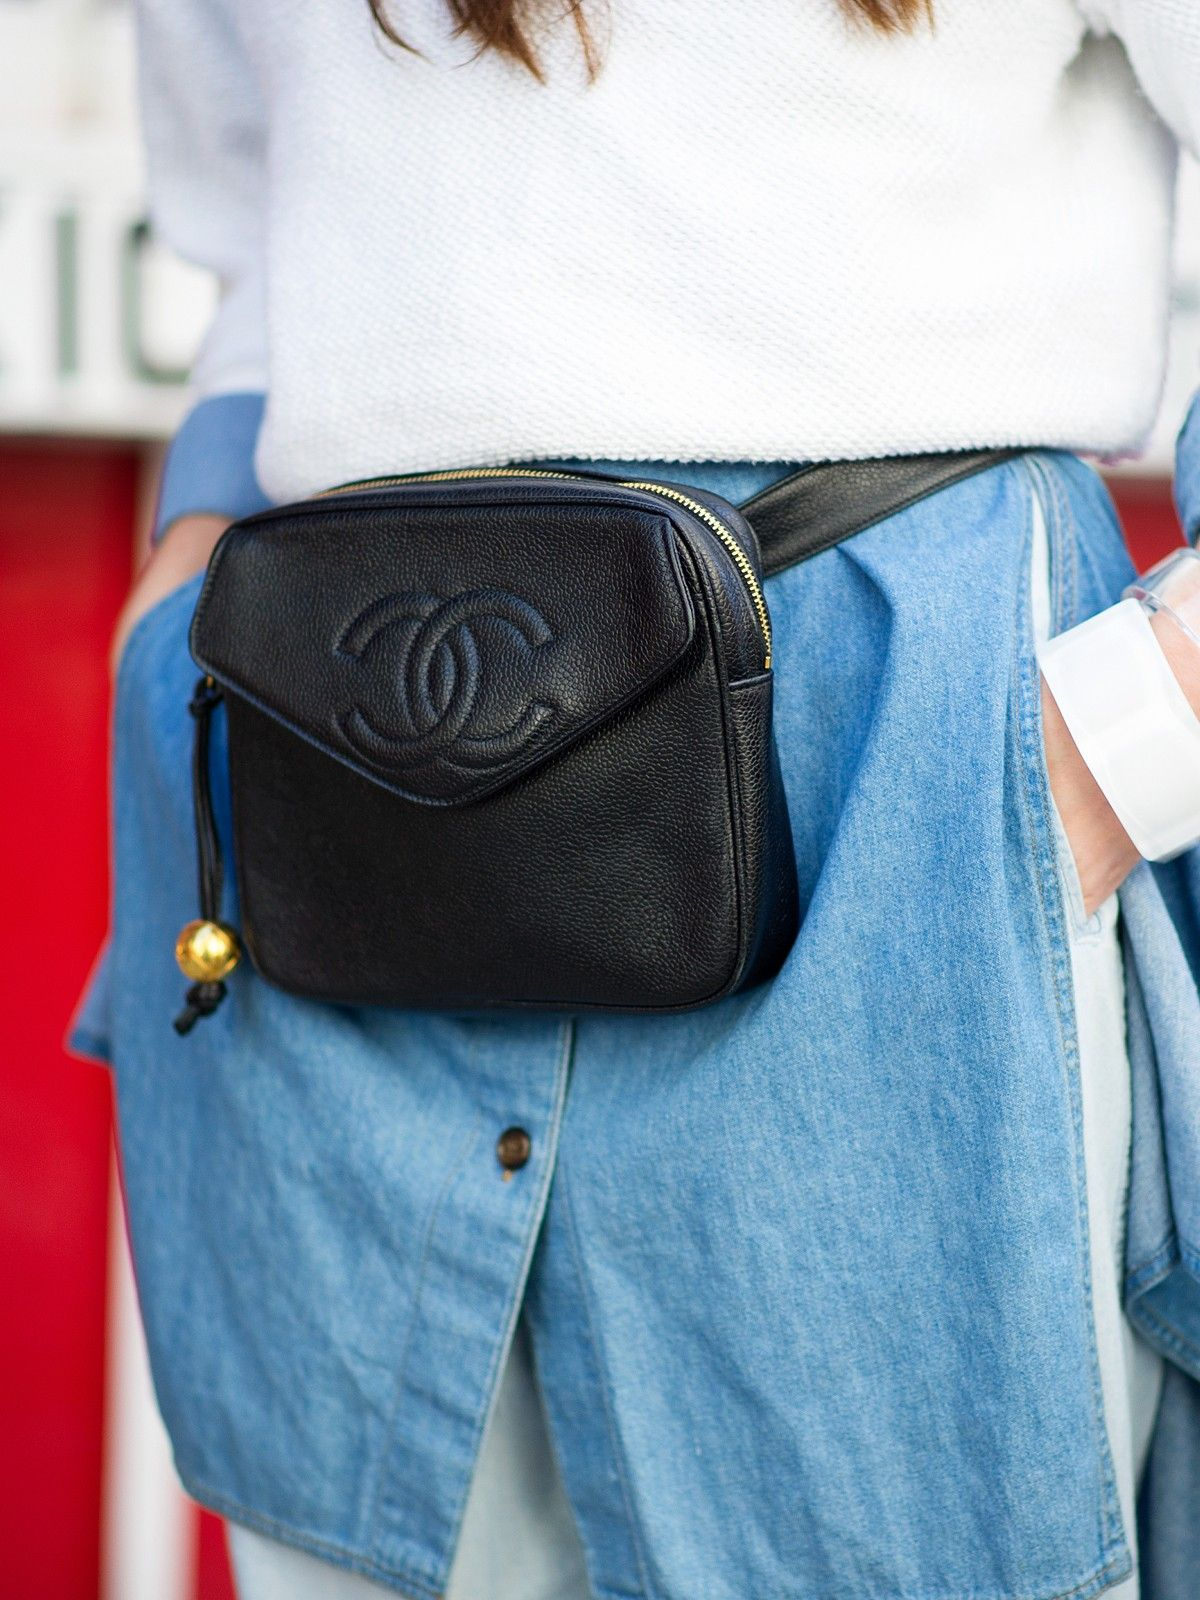 expensive fanny pack Refinery29 Shops  Chanel hip pack - Wonderland -  Boutiques f793a801e9a